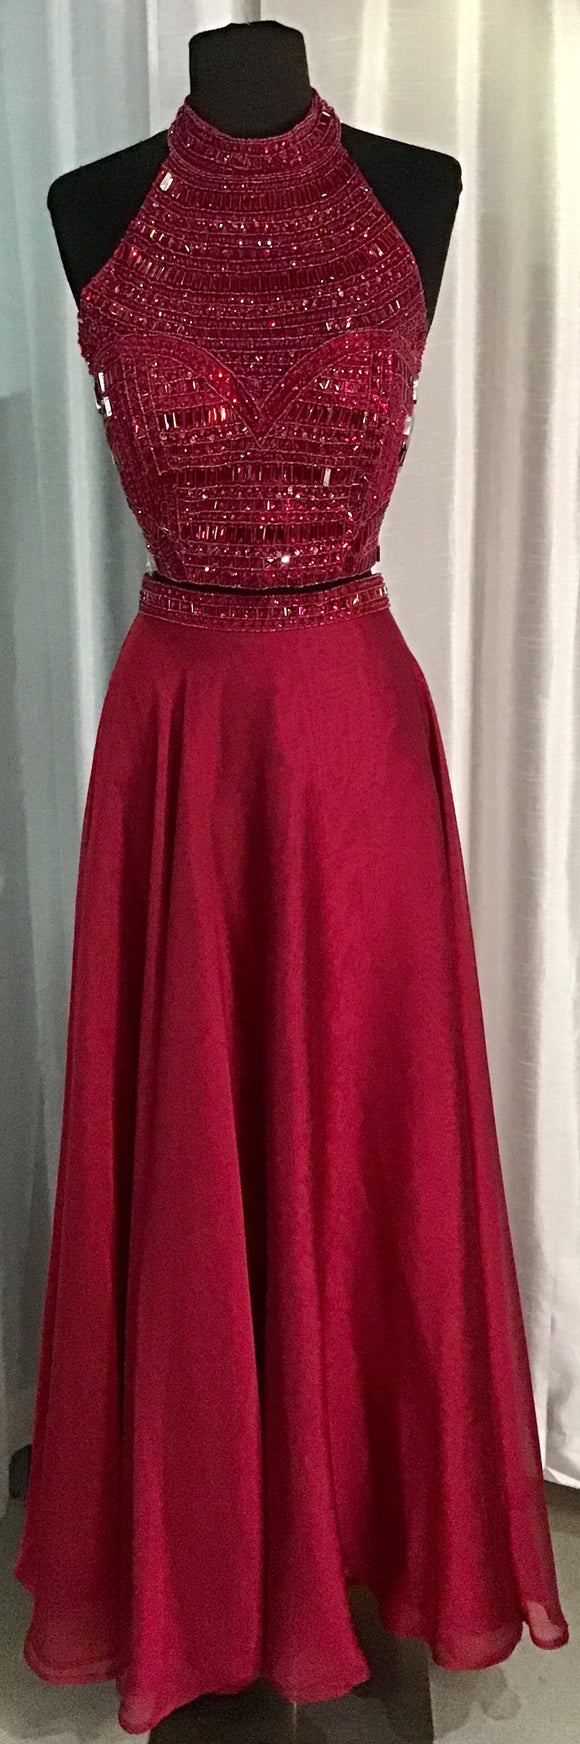 SHERRI HILL Long Ruby Two Piece Gown Size 14